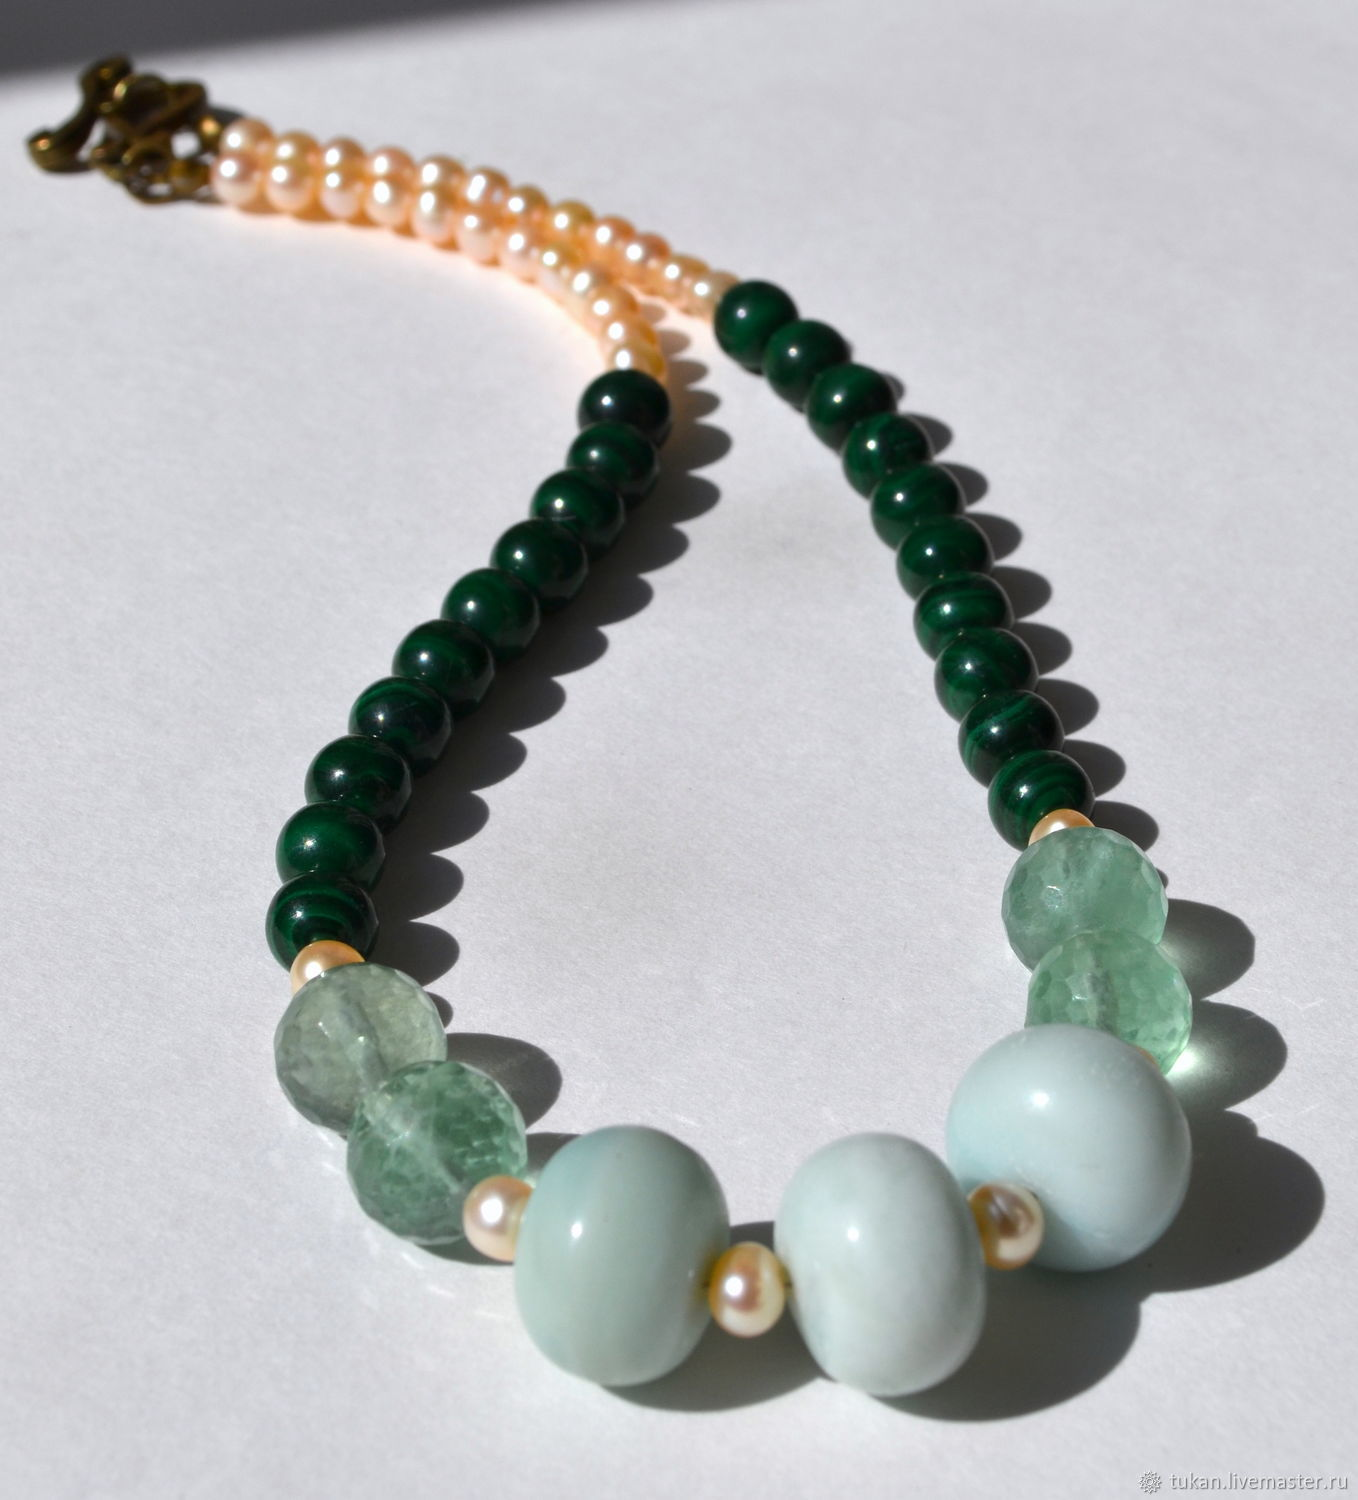 Necklaces & Beads handmade. Livemaster - handmade. Buy Necklace Inspiration and love.Handmade, natural stones, rhinestone